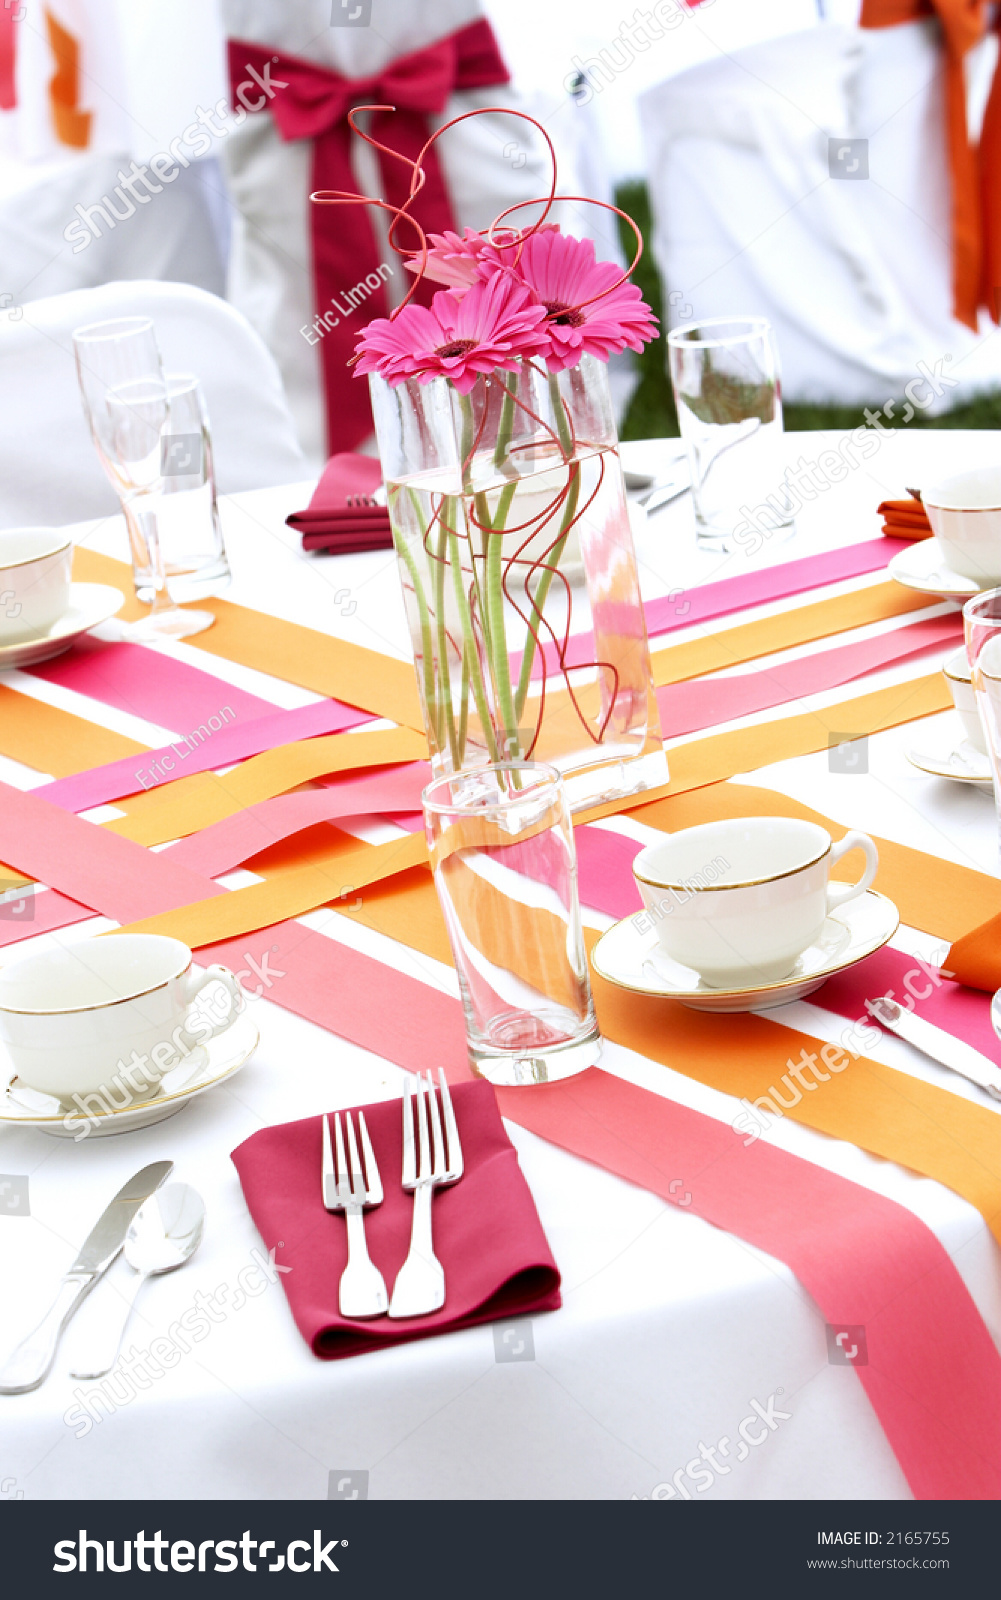 Very Cool And Hip Wedding Table Settings For A Funky Fresh Young Bride And  Groom.